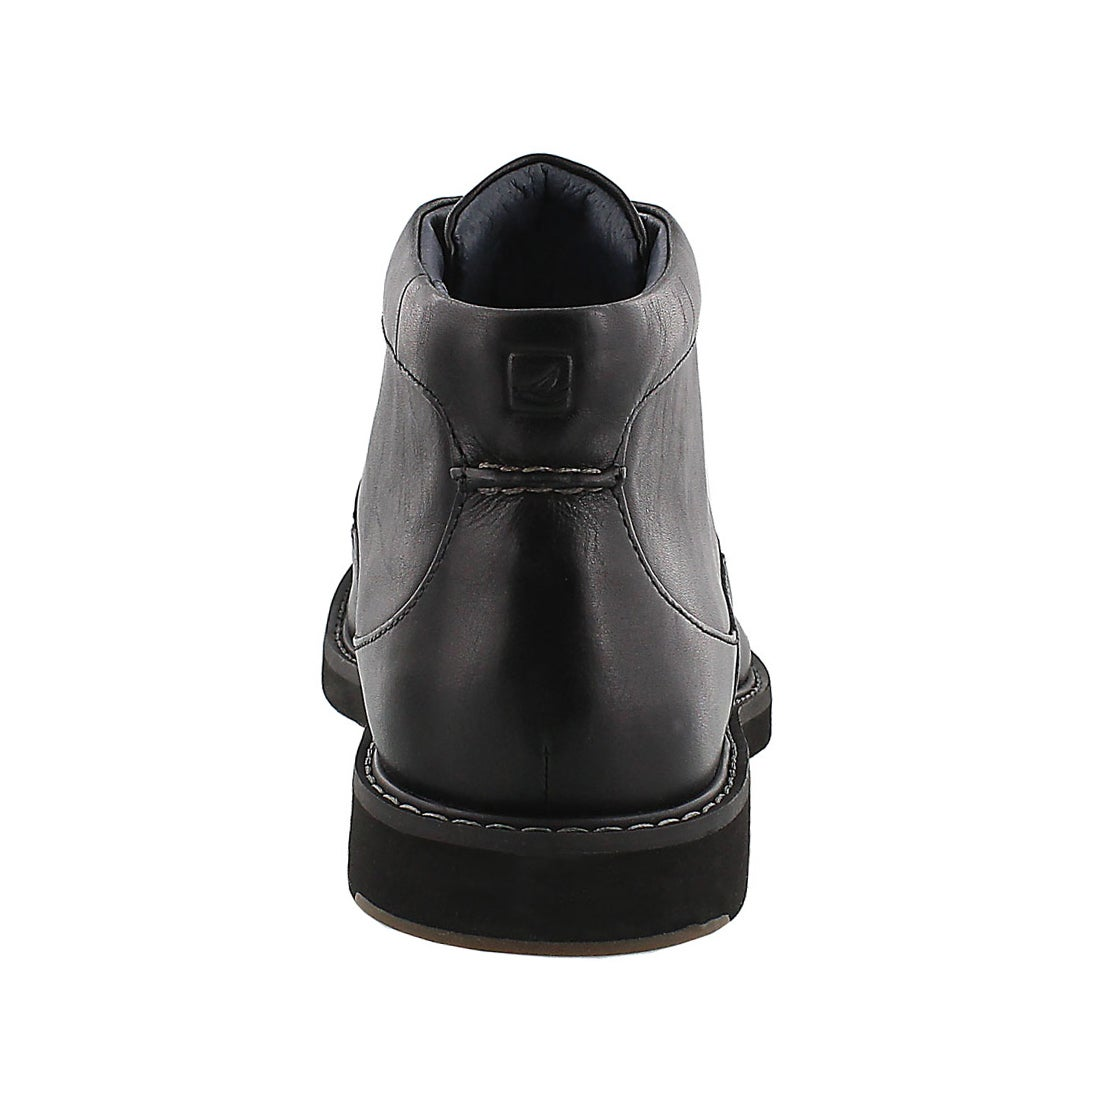 Mns Commander black chukka boot